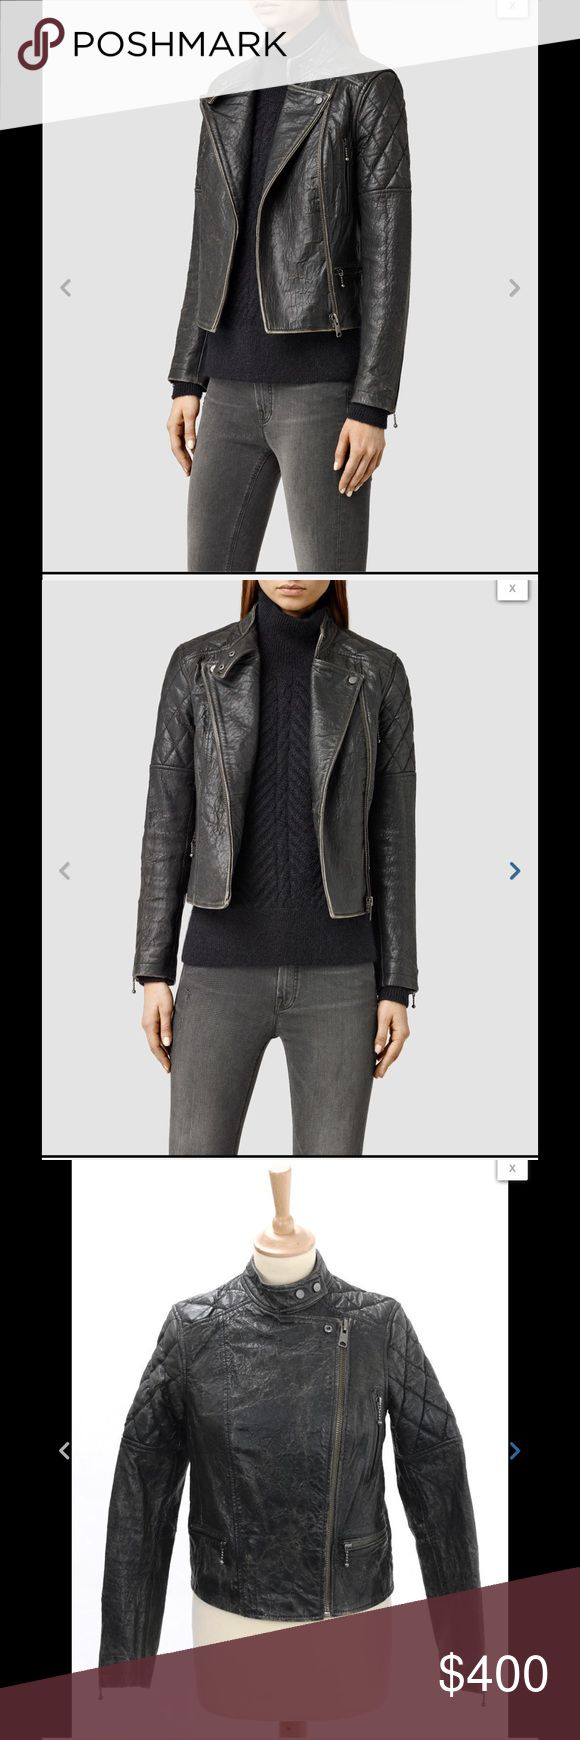 SOLD ALL SAINTS ASTOR LEATHER BIKER JACKET VINTAGE Item Description Condition: New with Tags:  A perennially stylish wardrobe staple, this luxe jacket from AllSaints is the perfect all-year-round cover-up. Inspired by traditional biker shapes, this jacket is crafted from sheep leather and features a snap band collar, diamond quilted detailing at the shoulders and an authentic textured finish. Layer over a silk tunic, skinny jeans and heeled boots for a stunning look. All Saints Jackets…